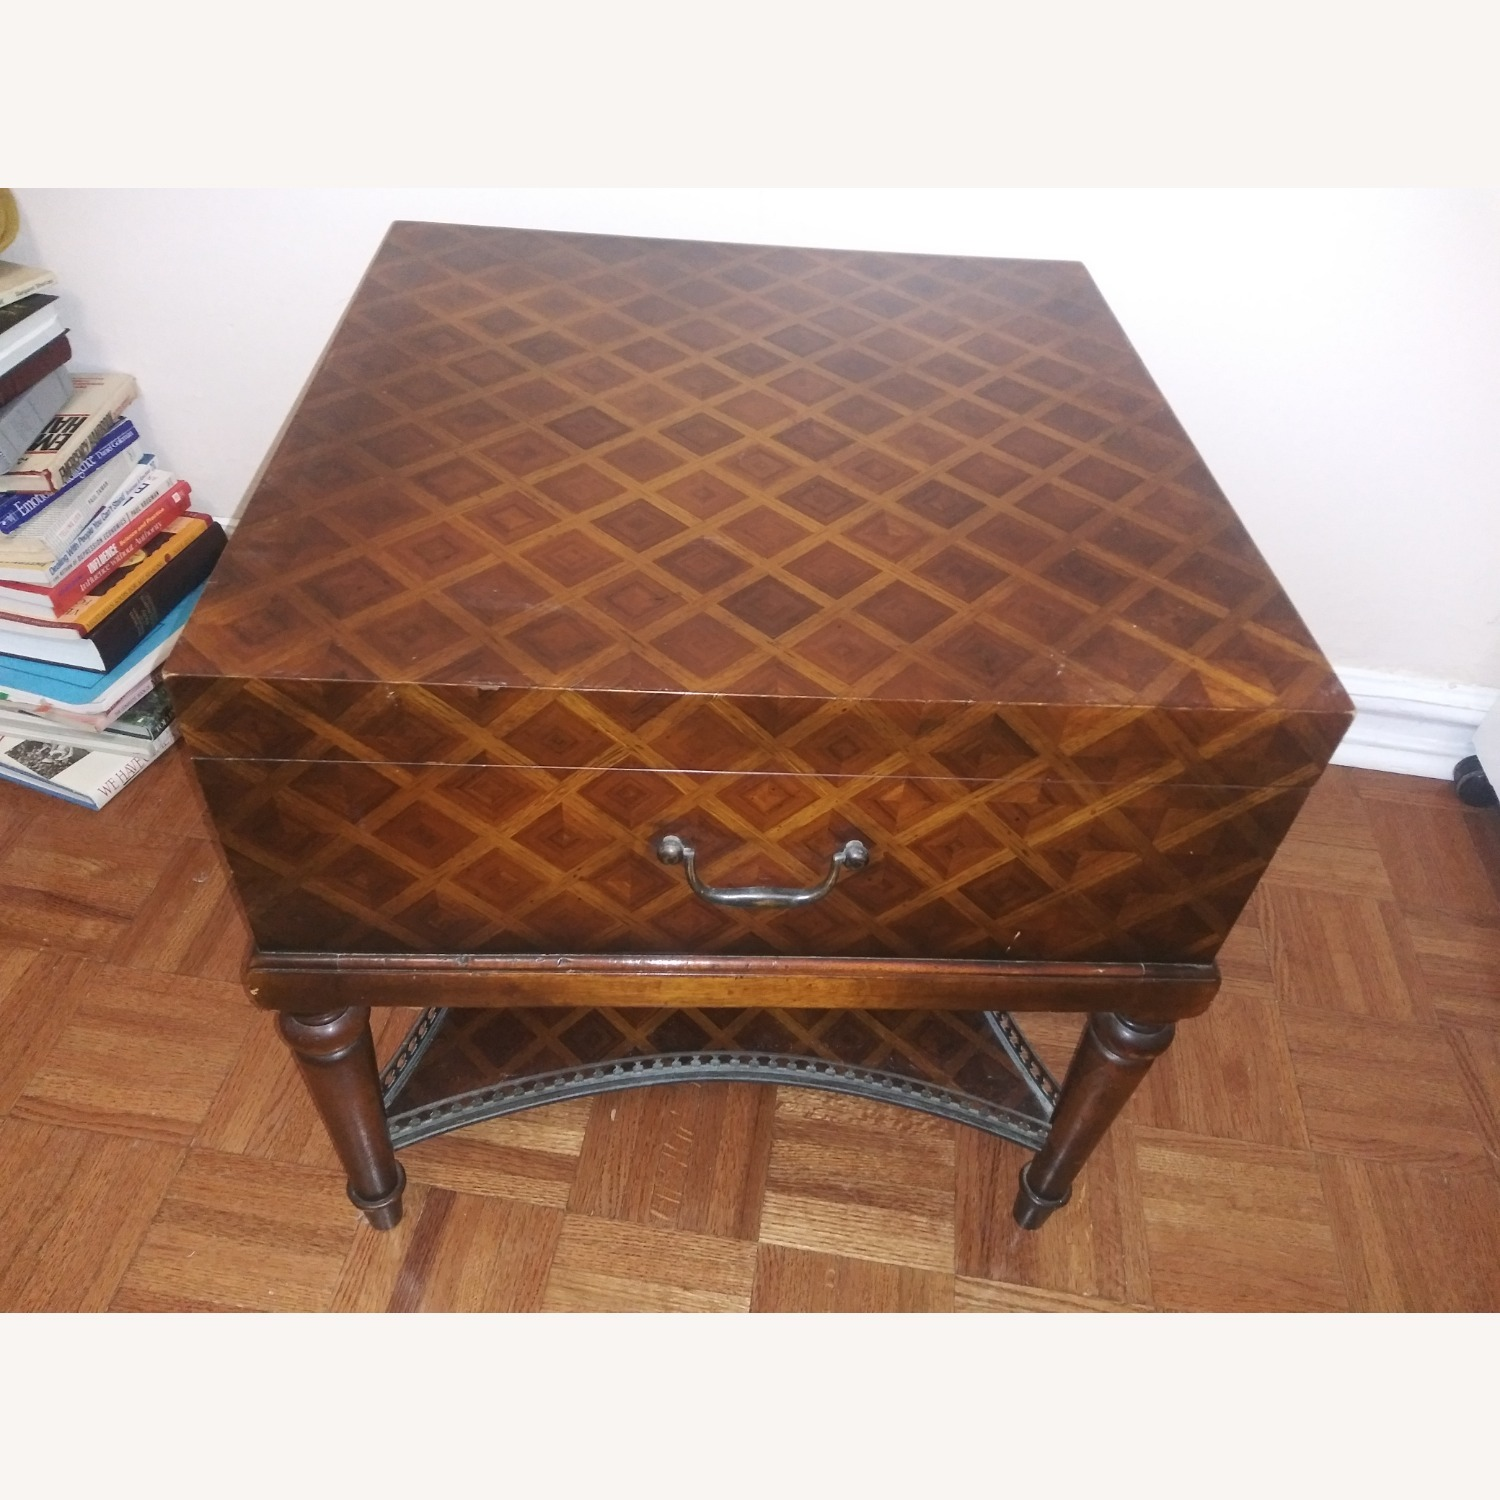 ABC Carpet and Home Card Table - image-1